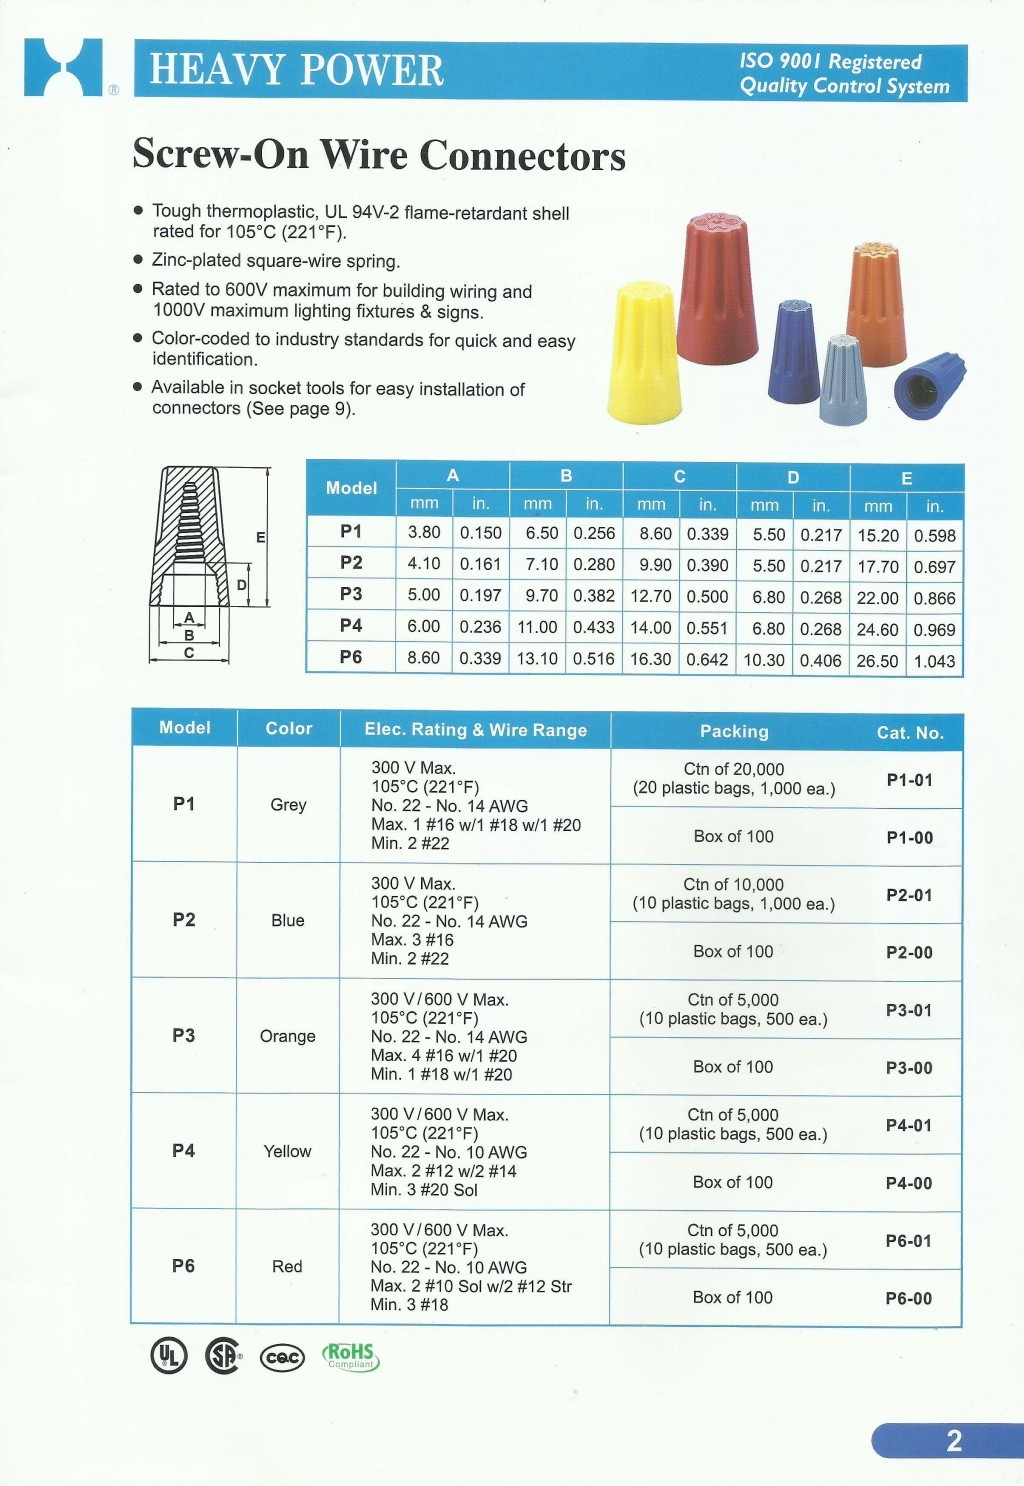 ACCESSORIES PANEL & BOX PANEL, HEAVY POWER, Screw-On Wire Connectors